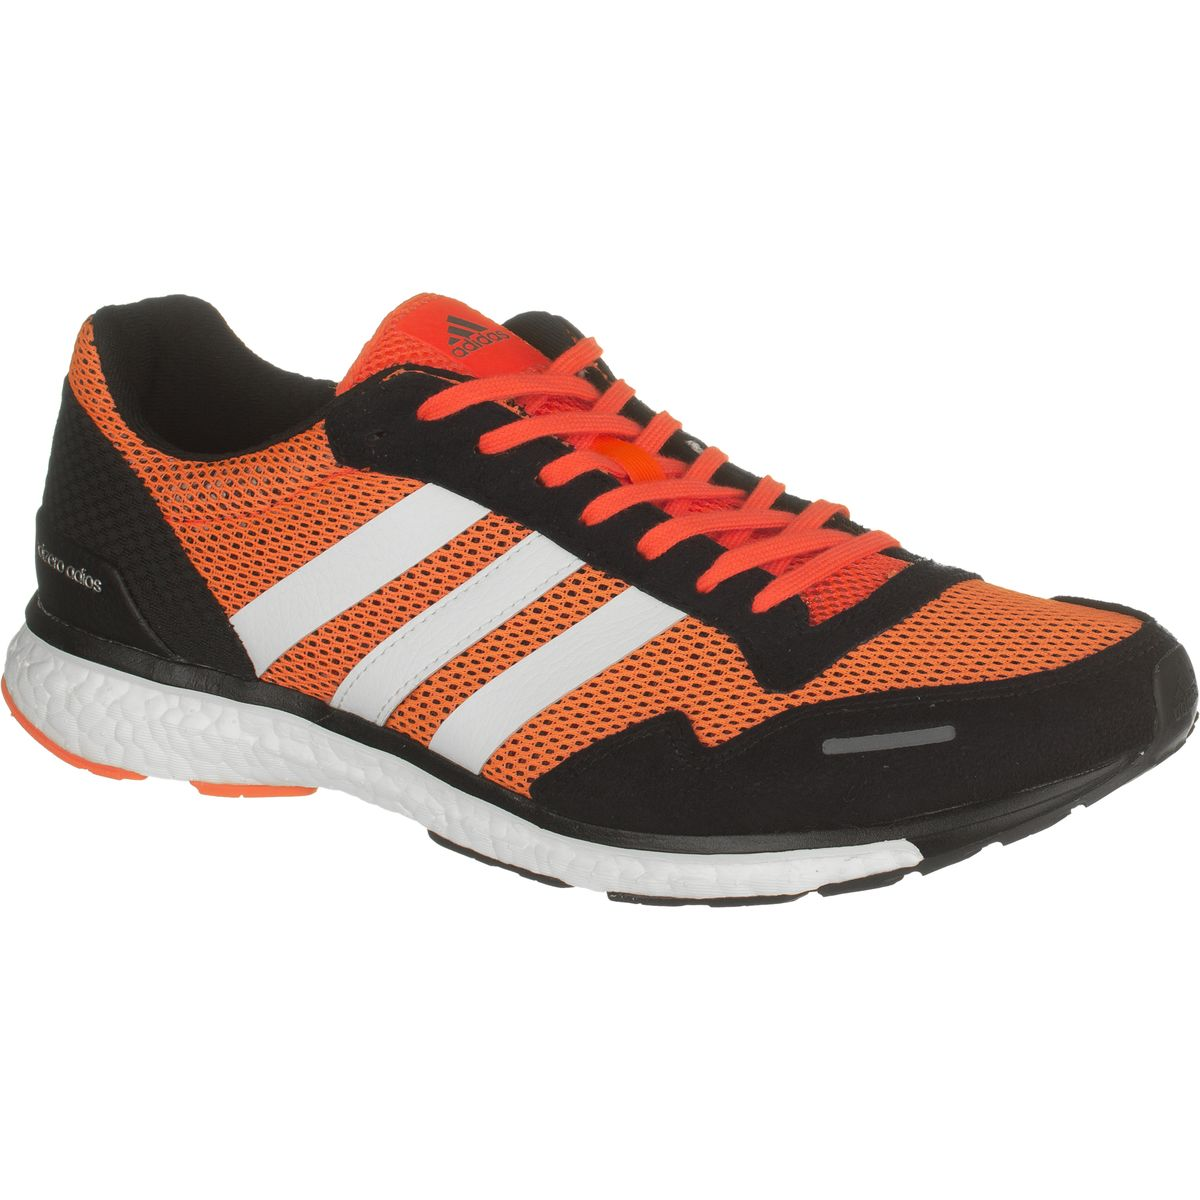 adidas adizero adios boost 3 running shoe men 39 s competitive cyclist. Black Bedroom Furniture Sets. Home Design Ideas